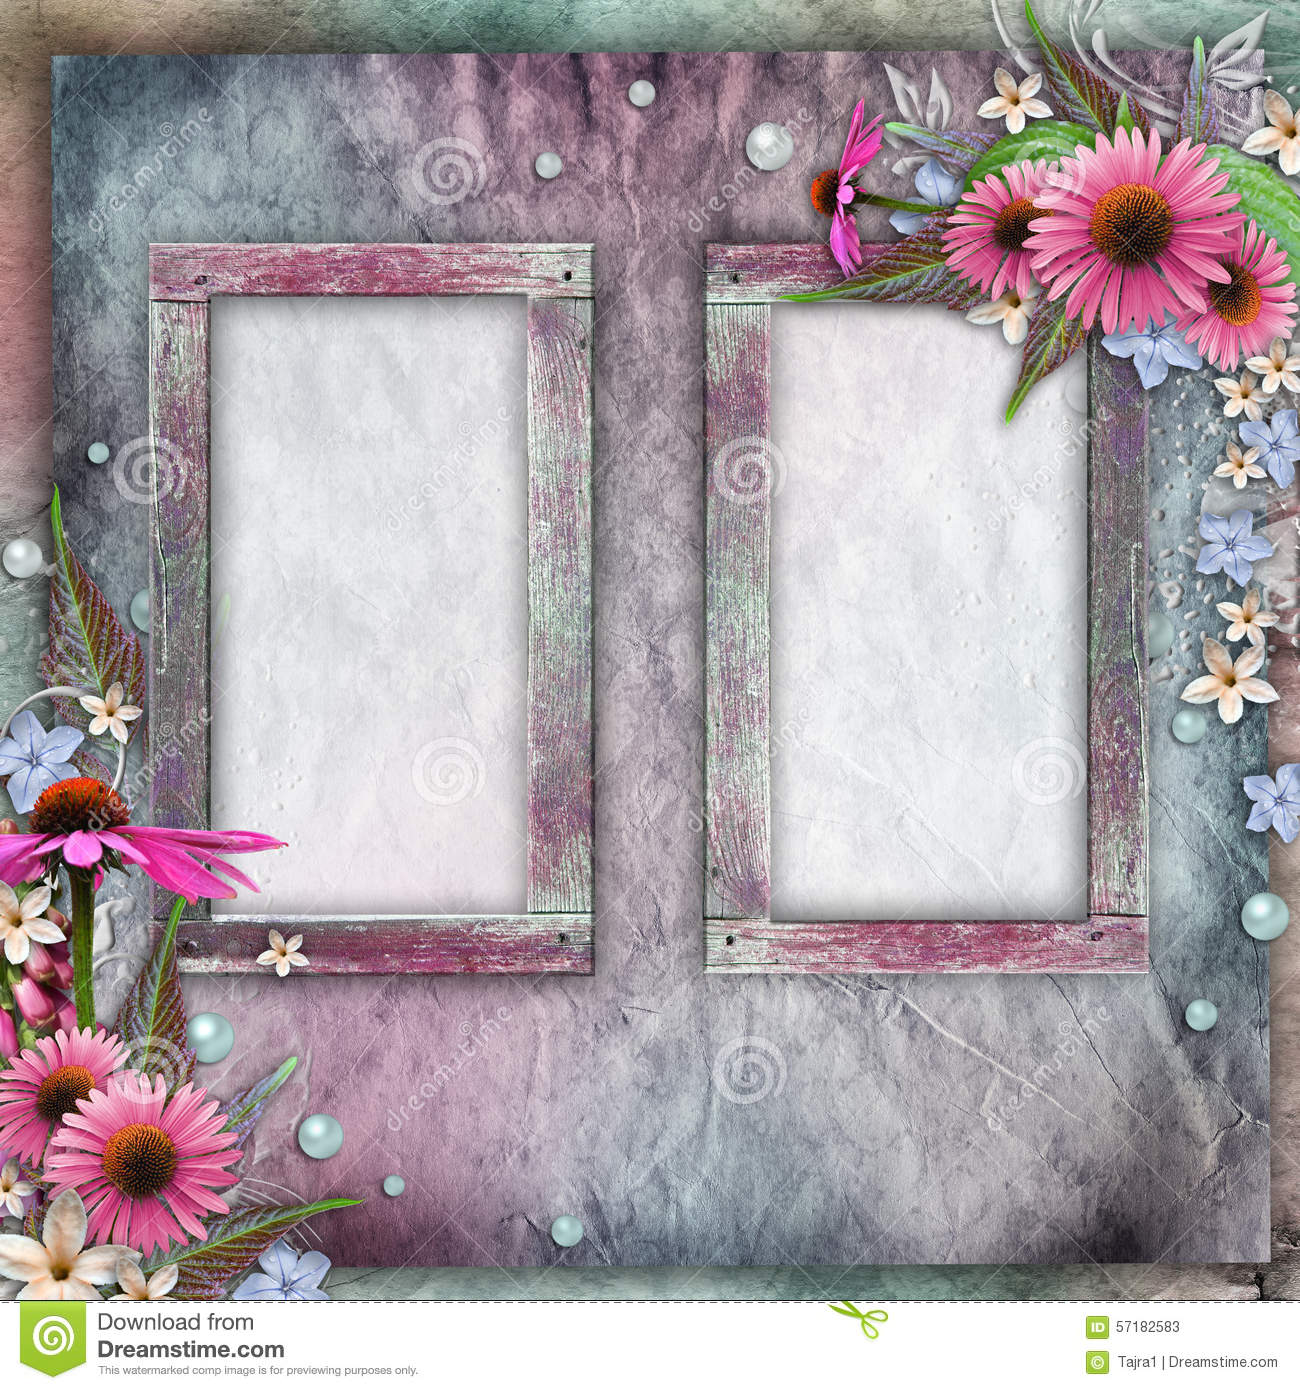 Greeting Card With Frames, Flowers, Pearls Stock Image - Image of ...